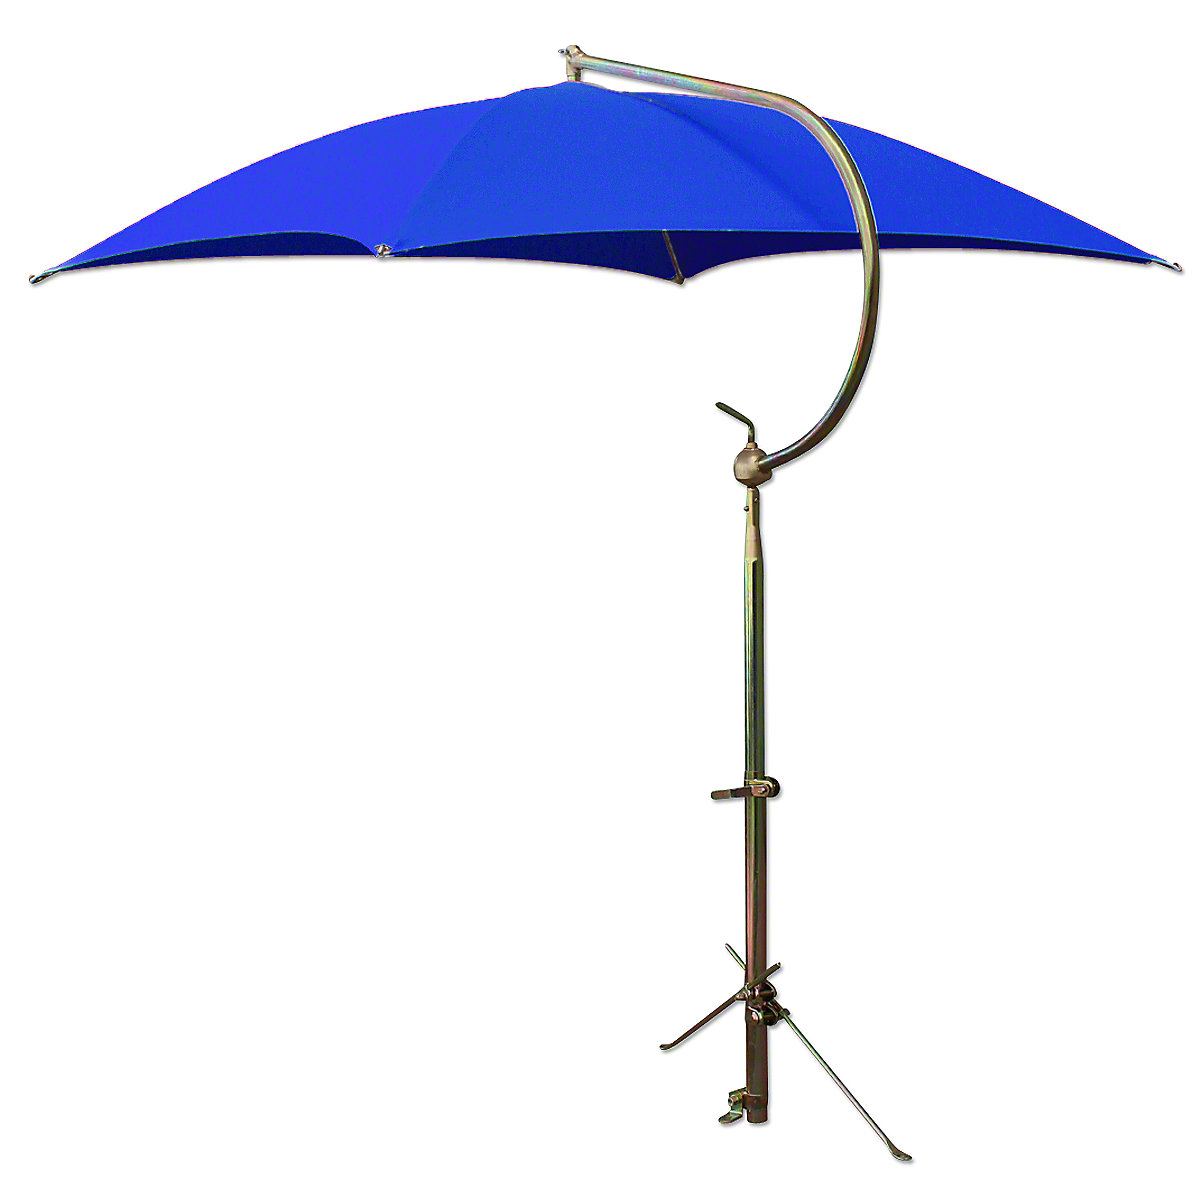 Deluxe Blue Tractor Umbrella With Mounting Brackets.